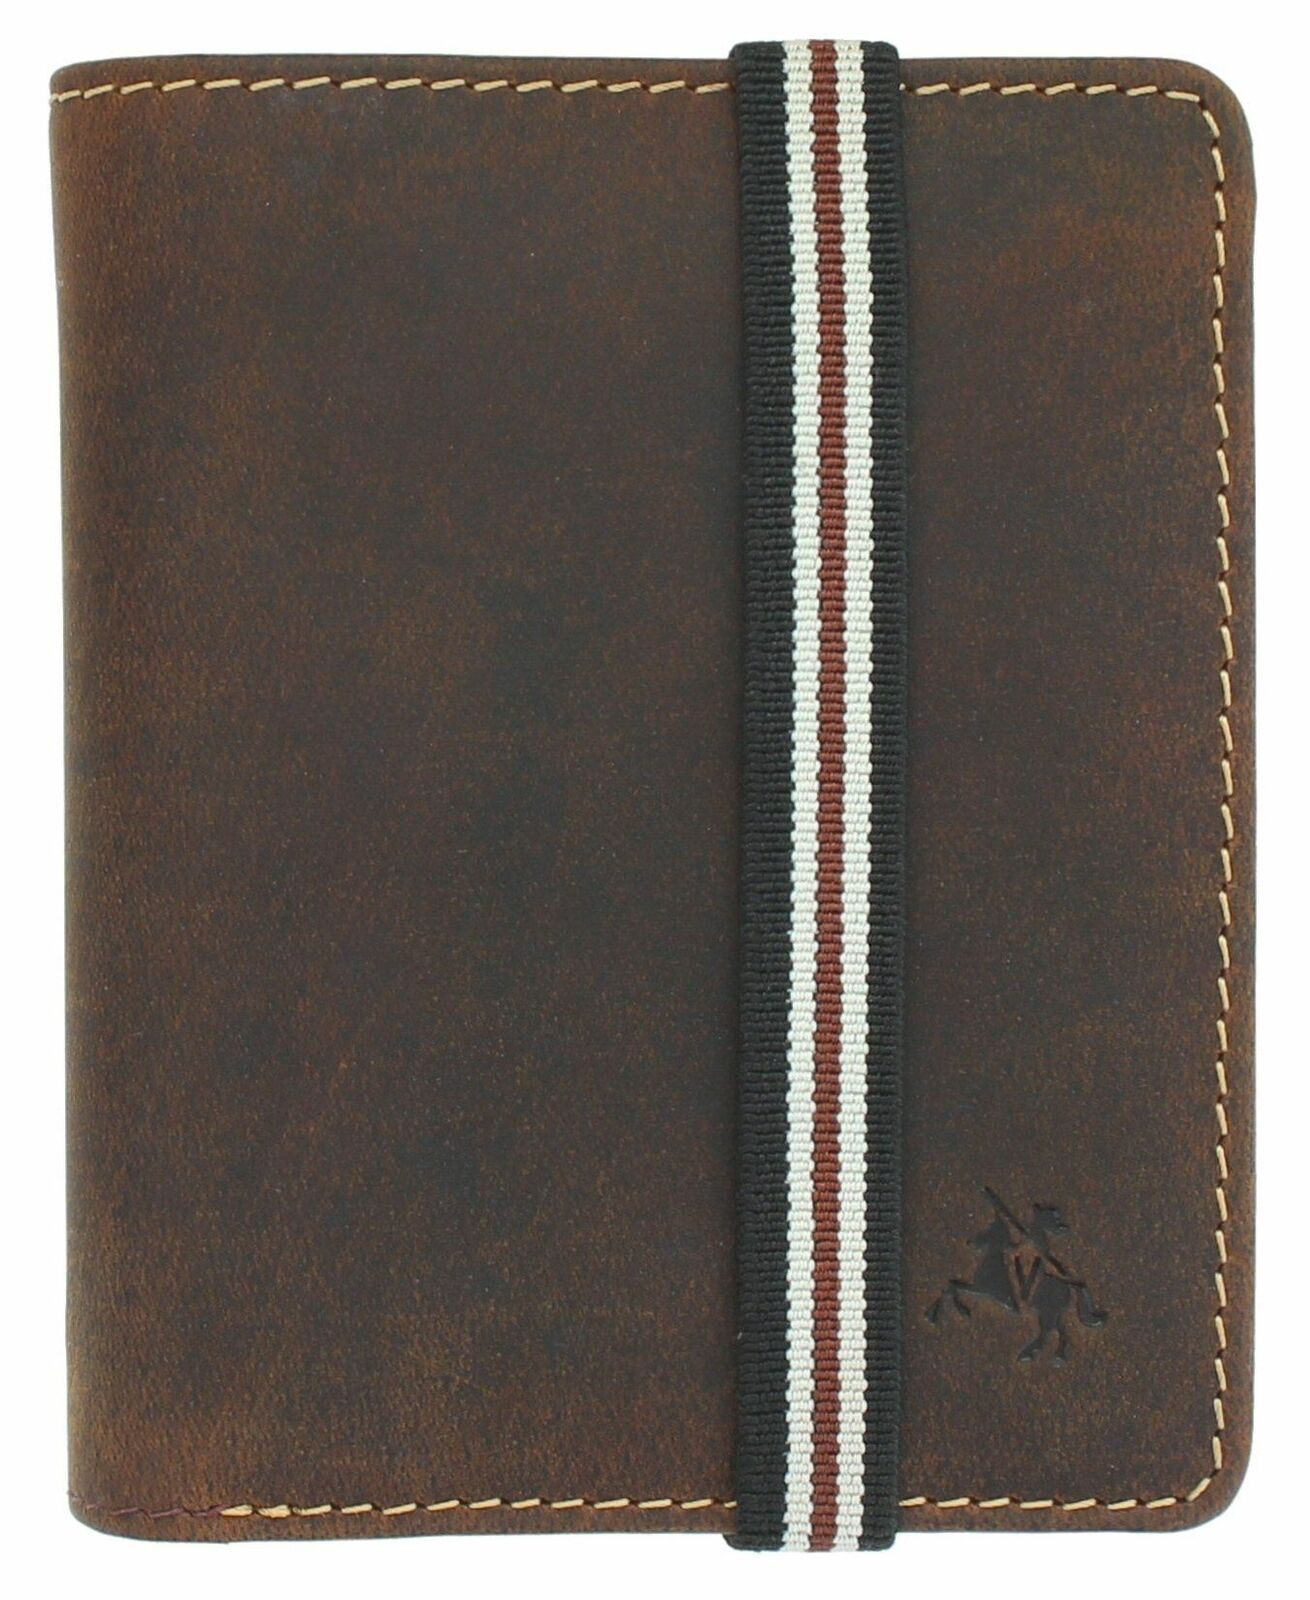 Boxed in 3 colours HT11 Men/'s Real Leather Visconti RFID Organiser Wallet